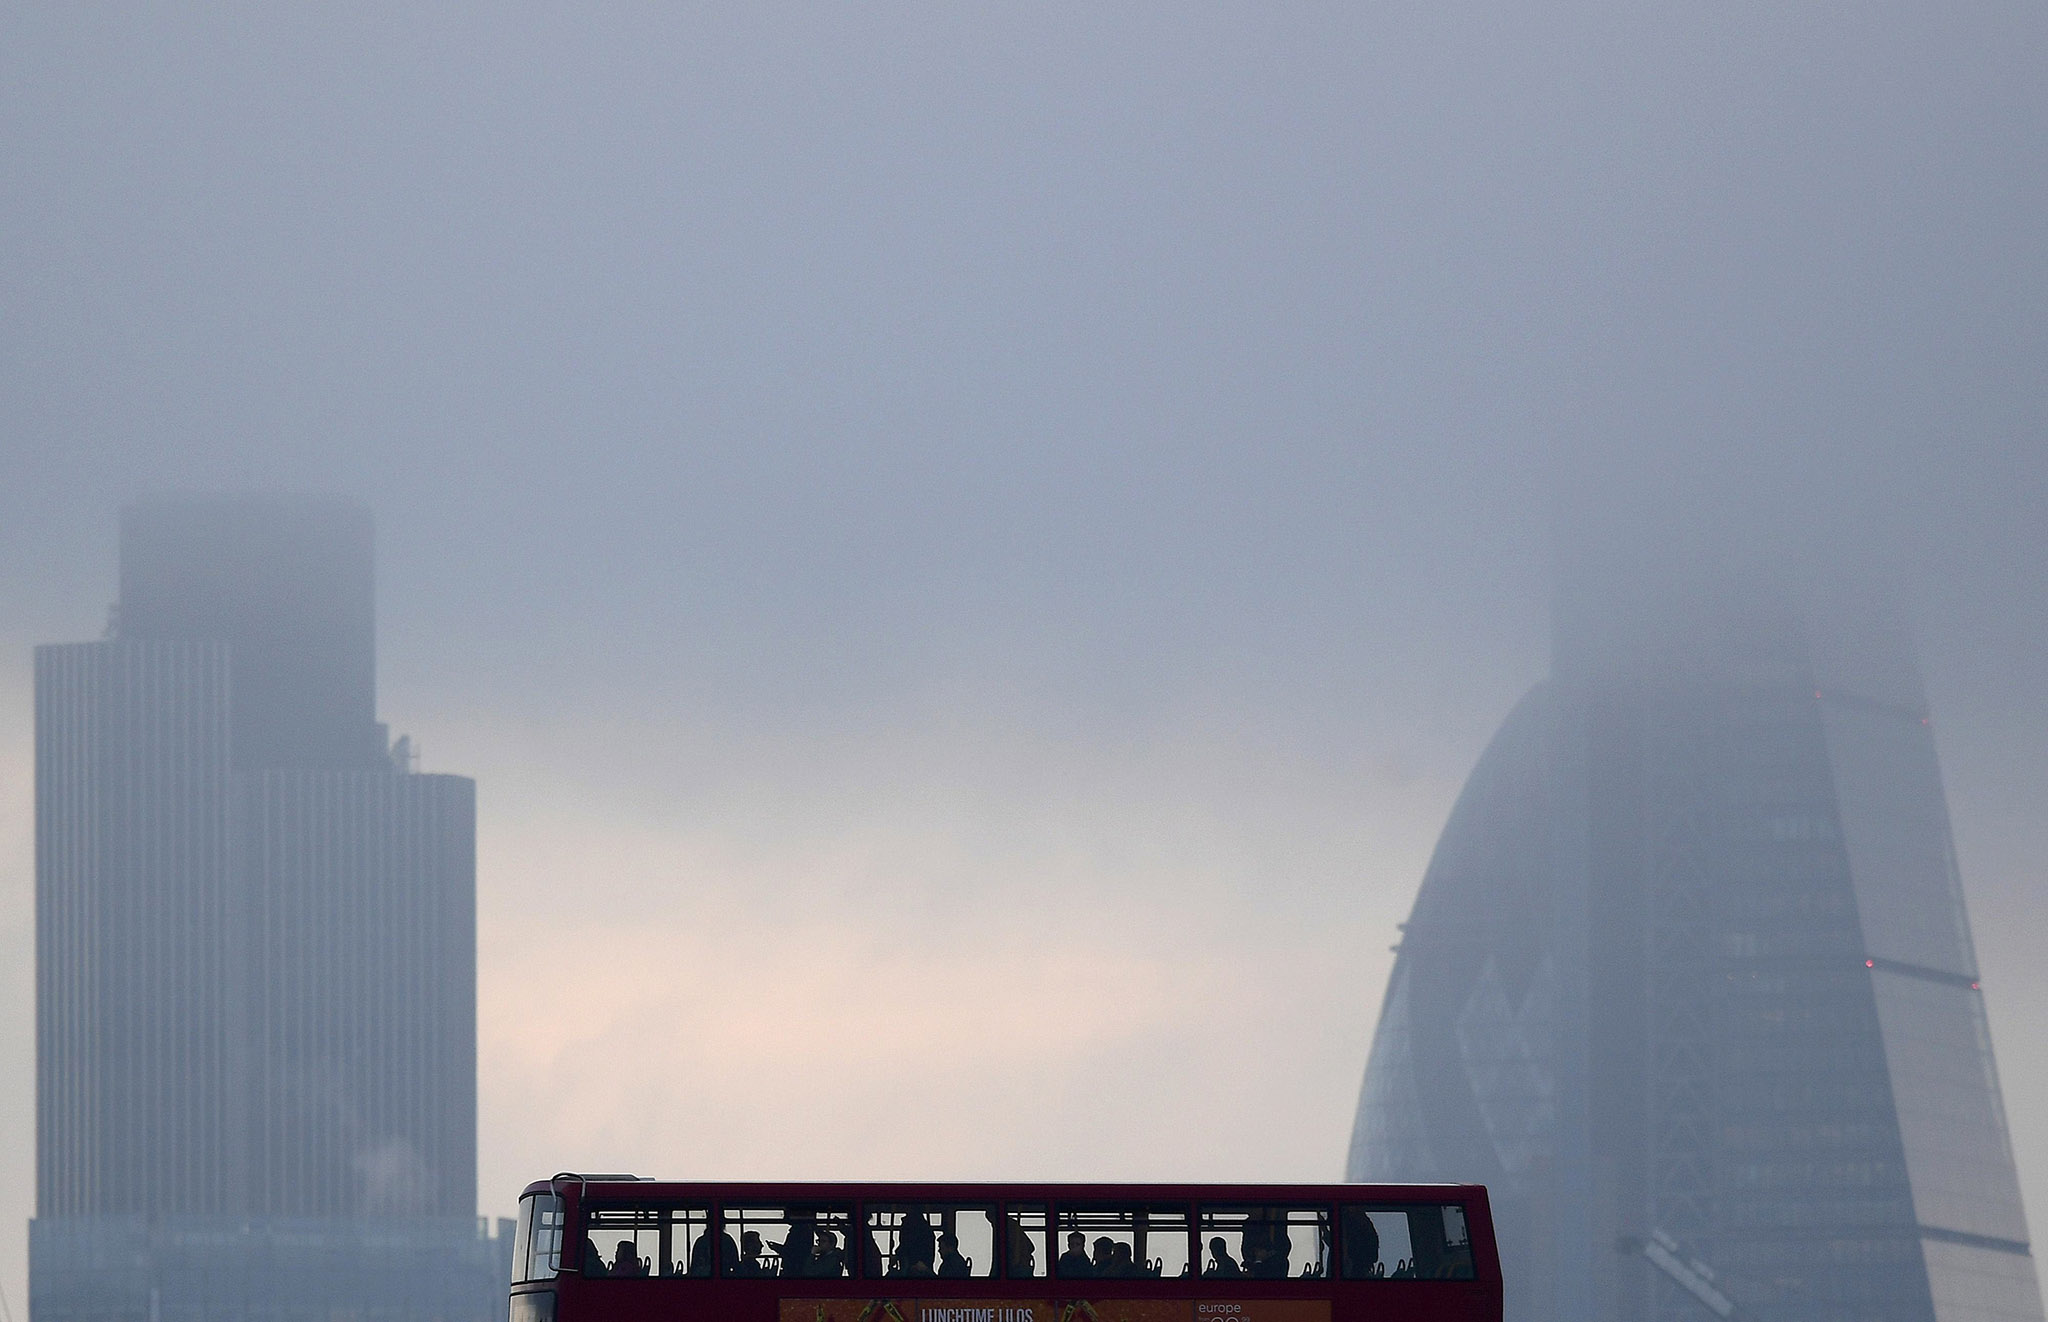 City workers cross the River Thames with the City of London financial district seen behind in London, in Britain October 27, 2016. REUTERS/Toby Melville